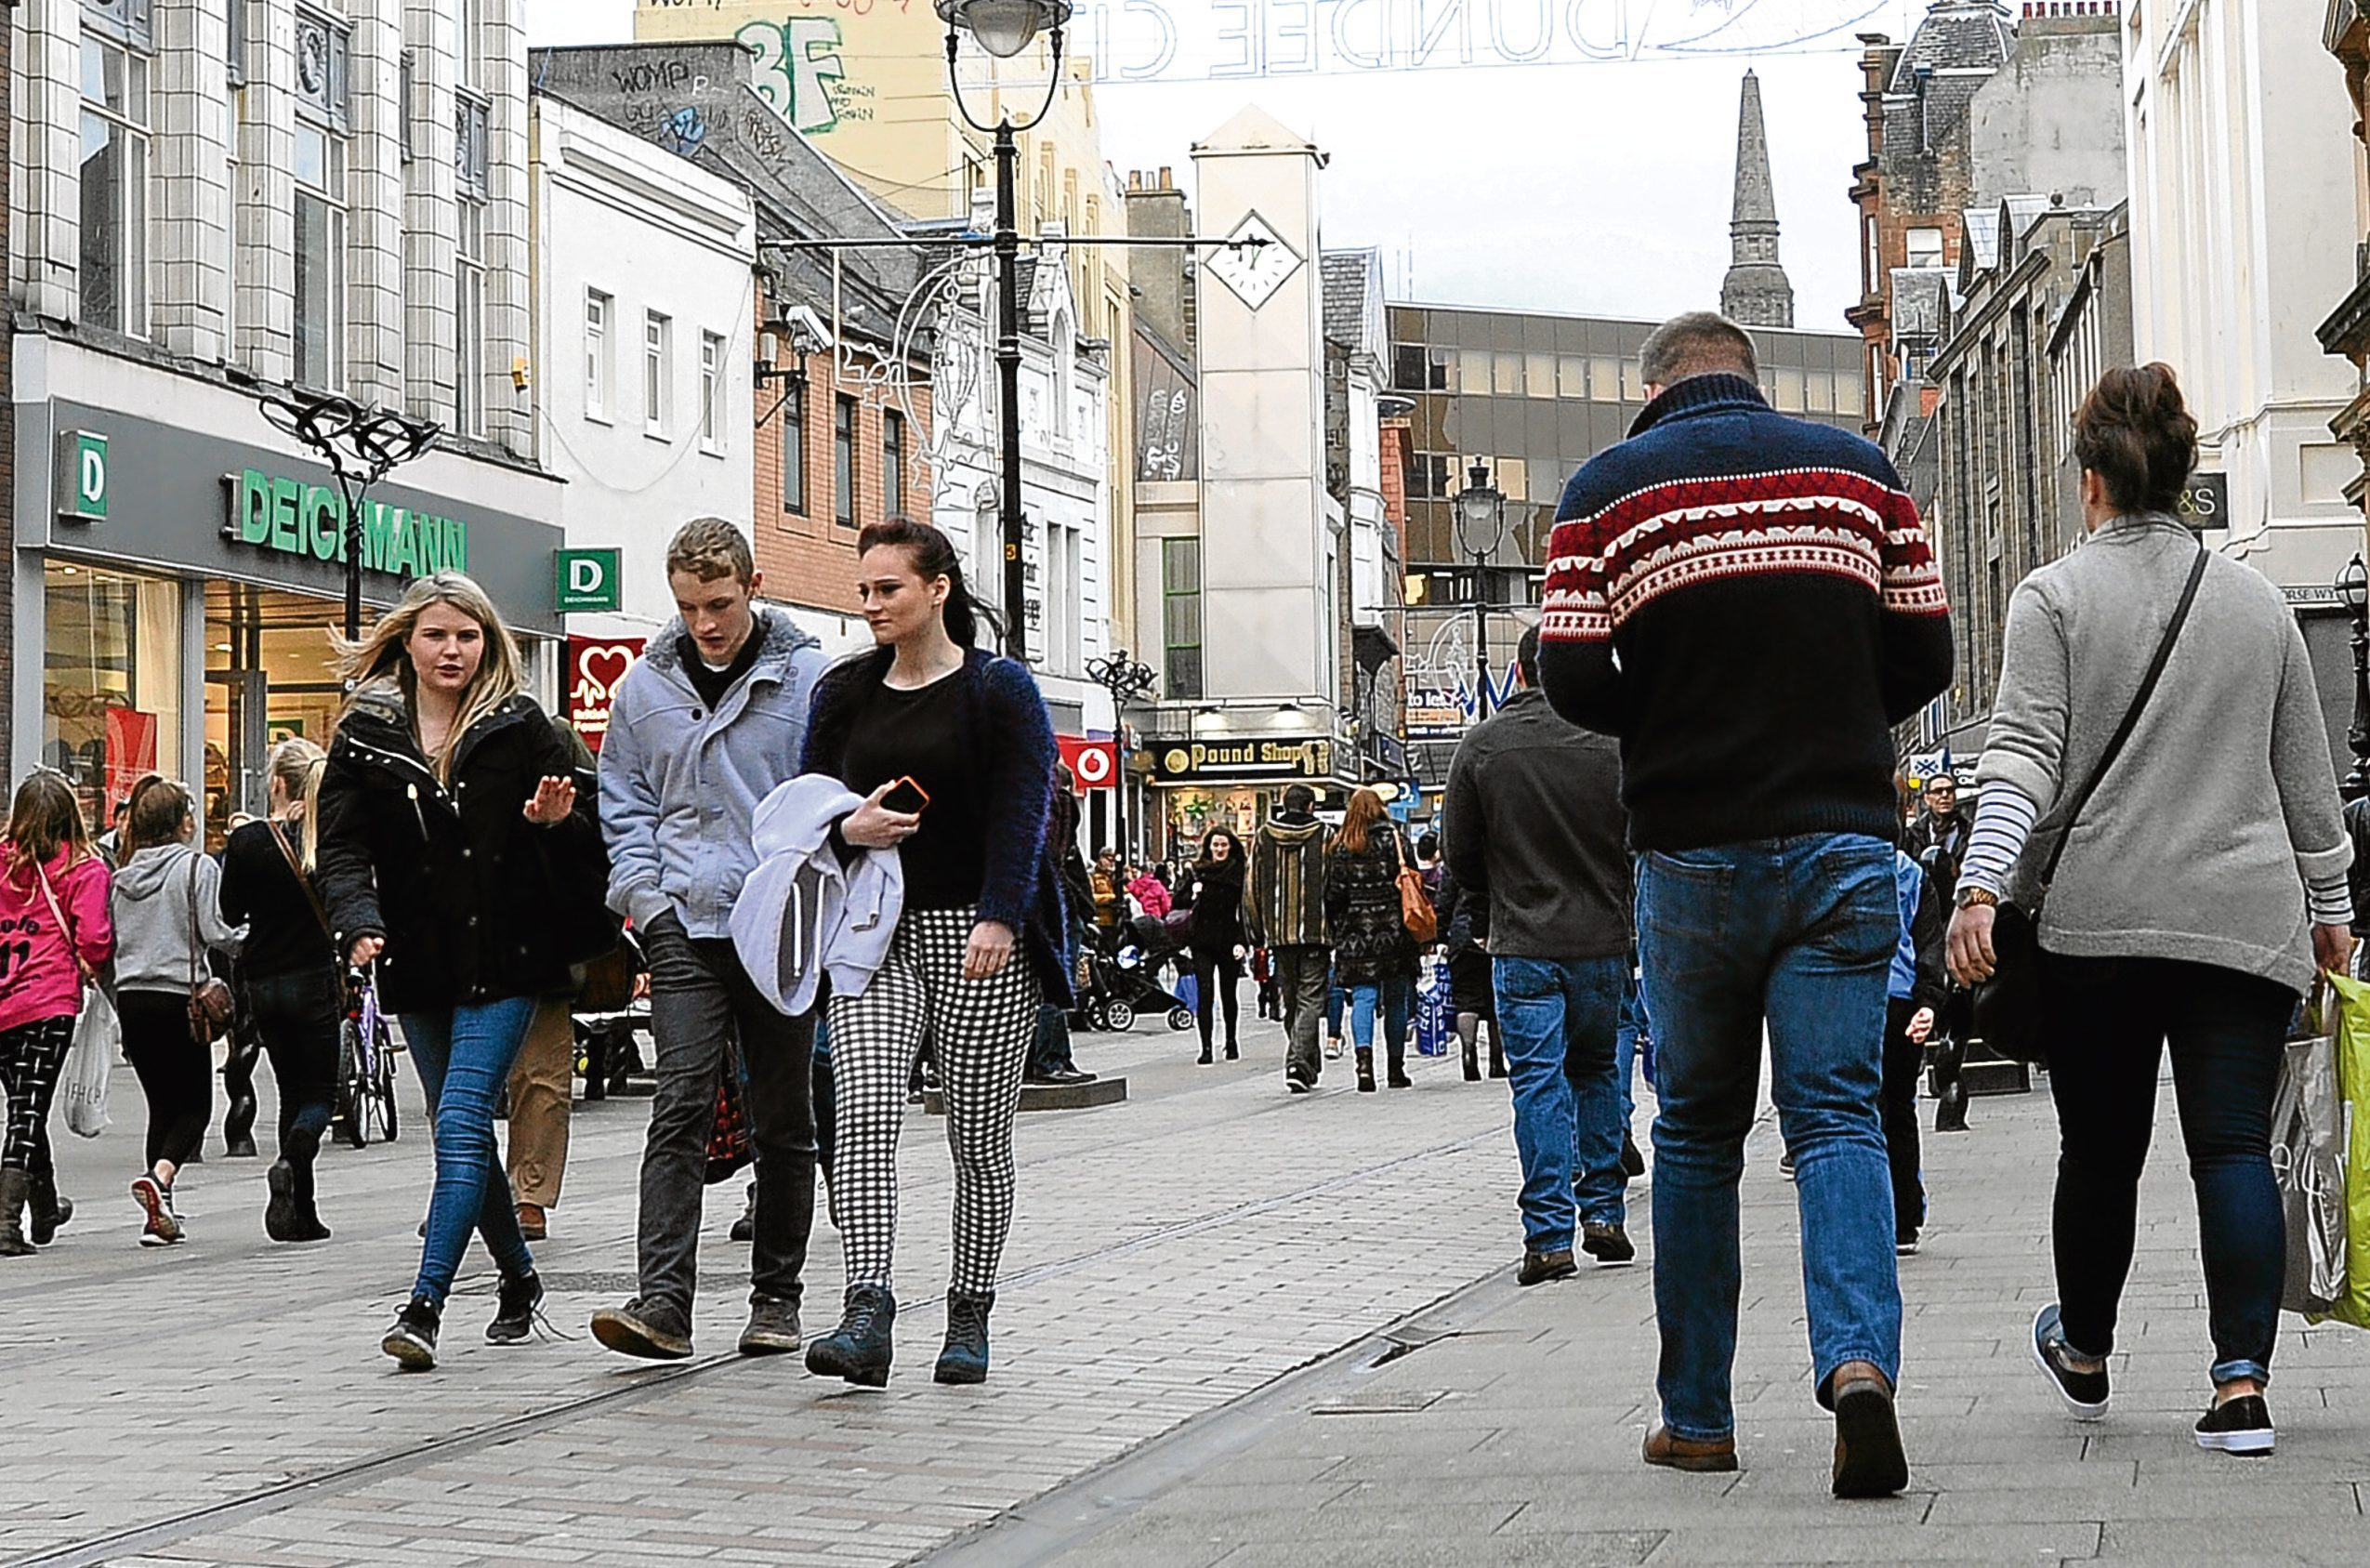 Shoppers in Murraygate, Dundee